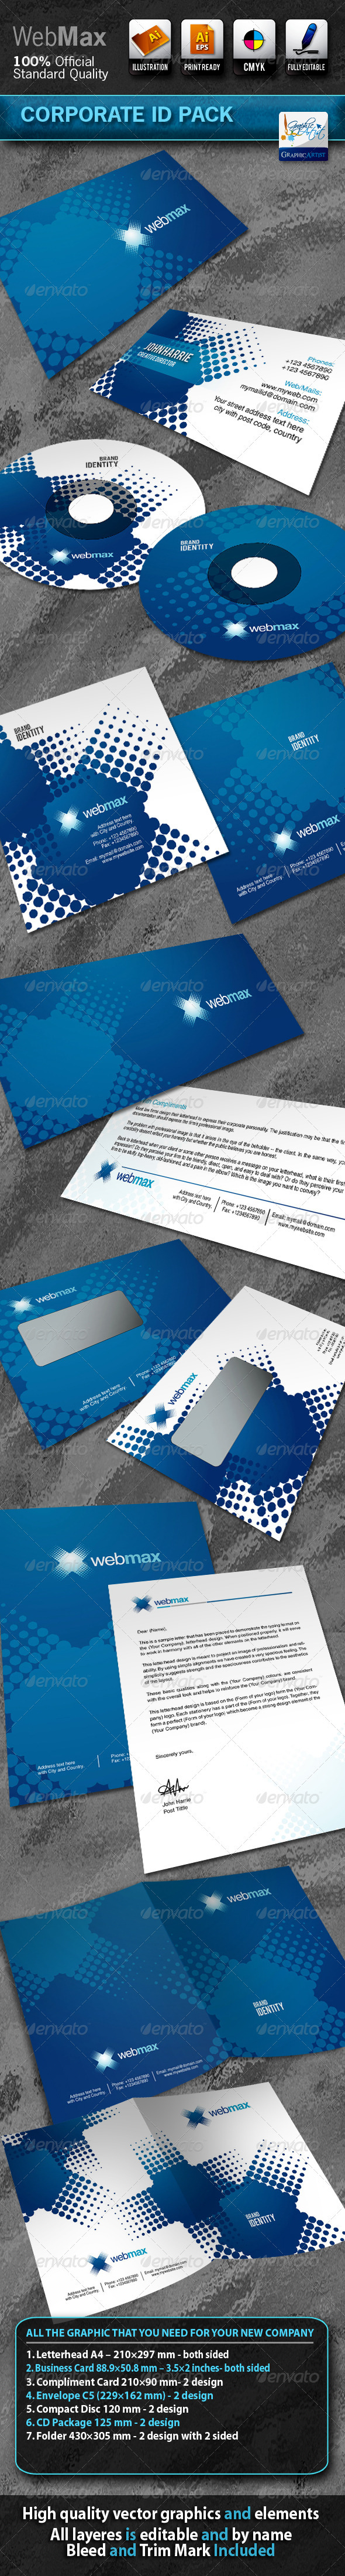 WebMax Business Corporate ID Pack With Logo - Stationery Print Templates